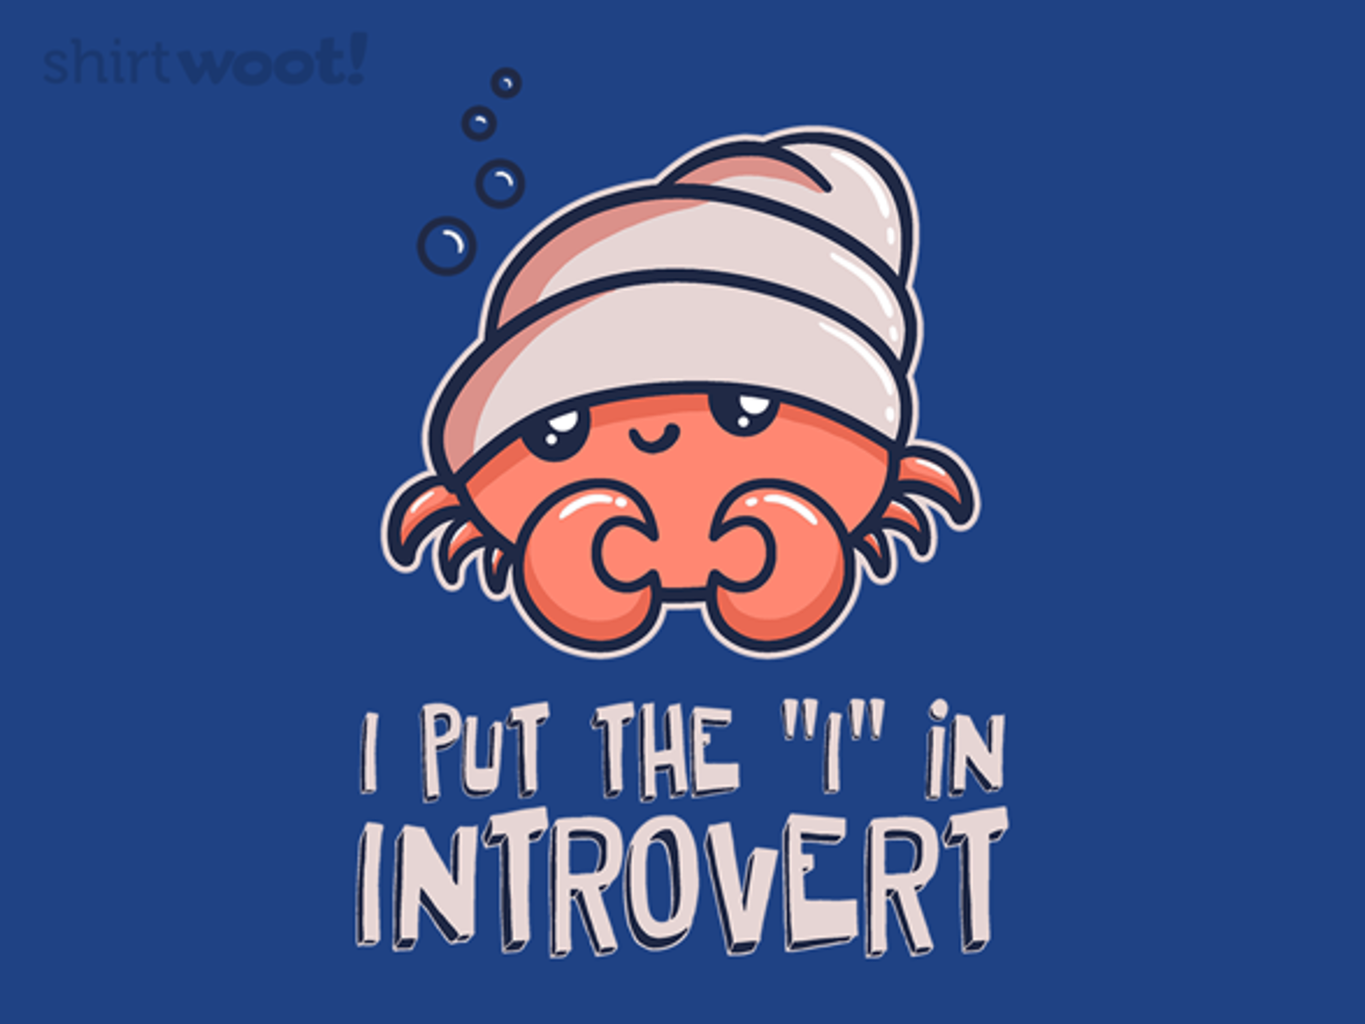 Woot!: I Is For Introvert